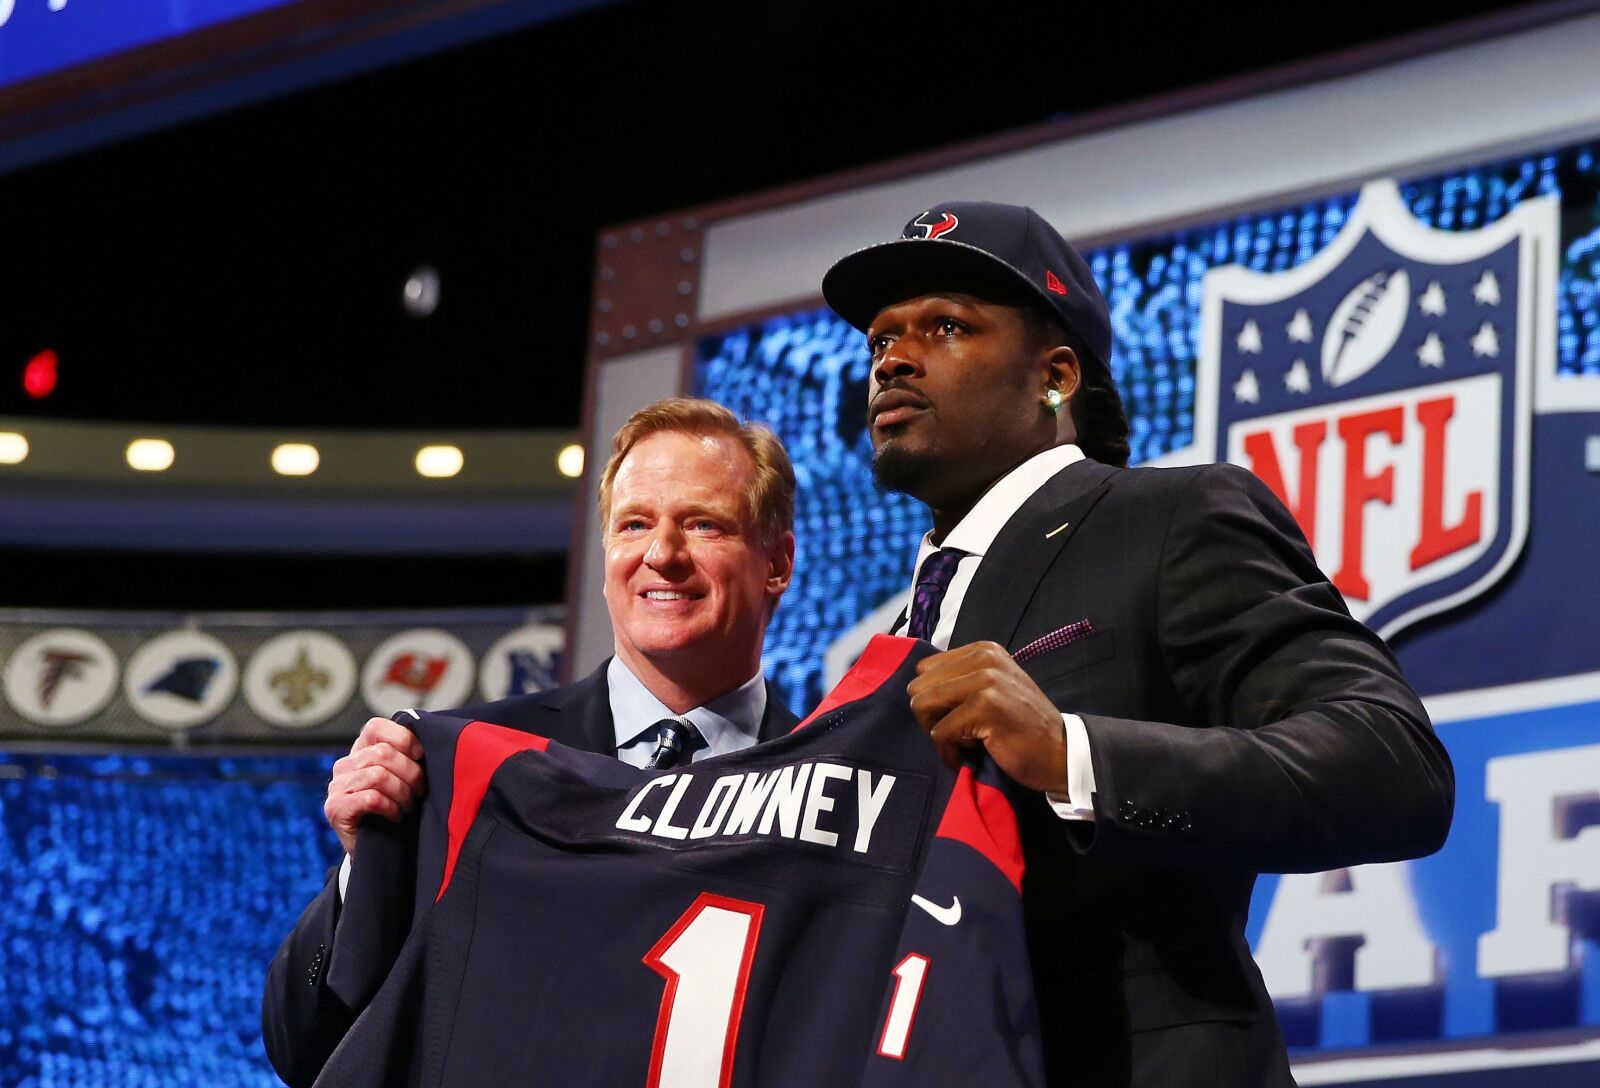 NFL Draft: Re-drafting the star-studded 2014 NFL Draft